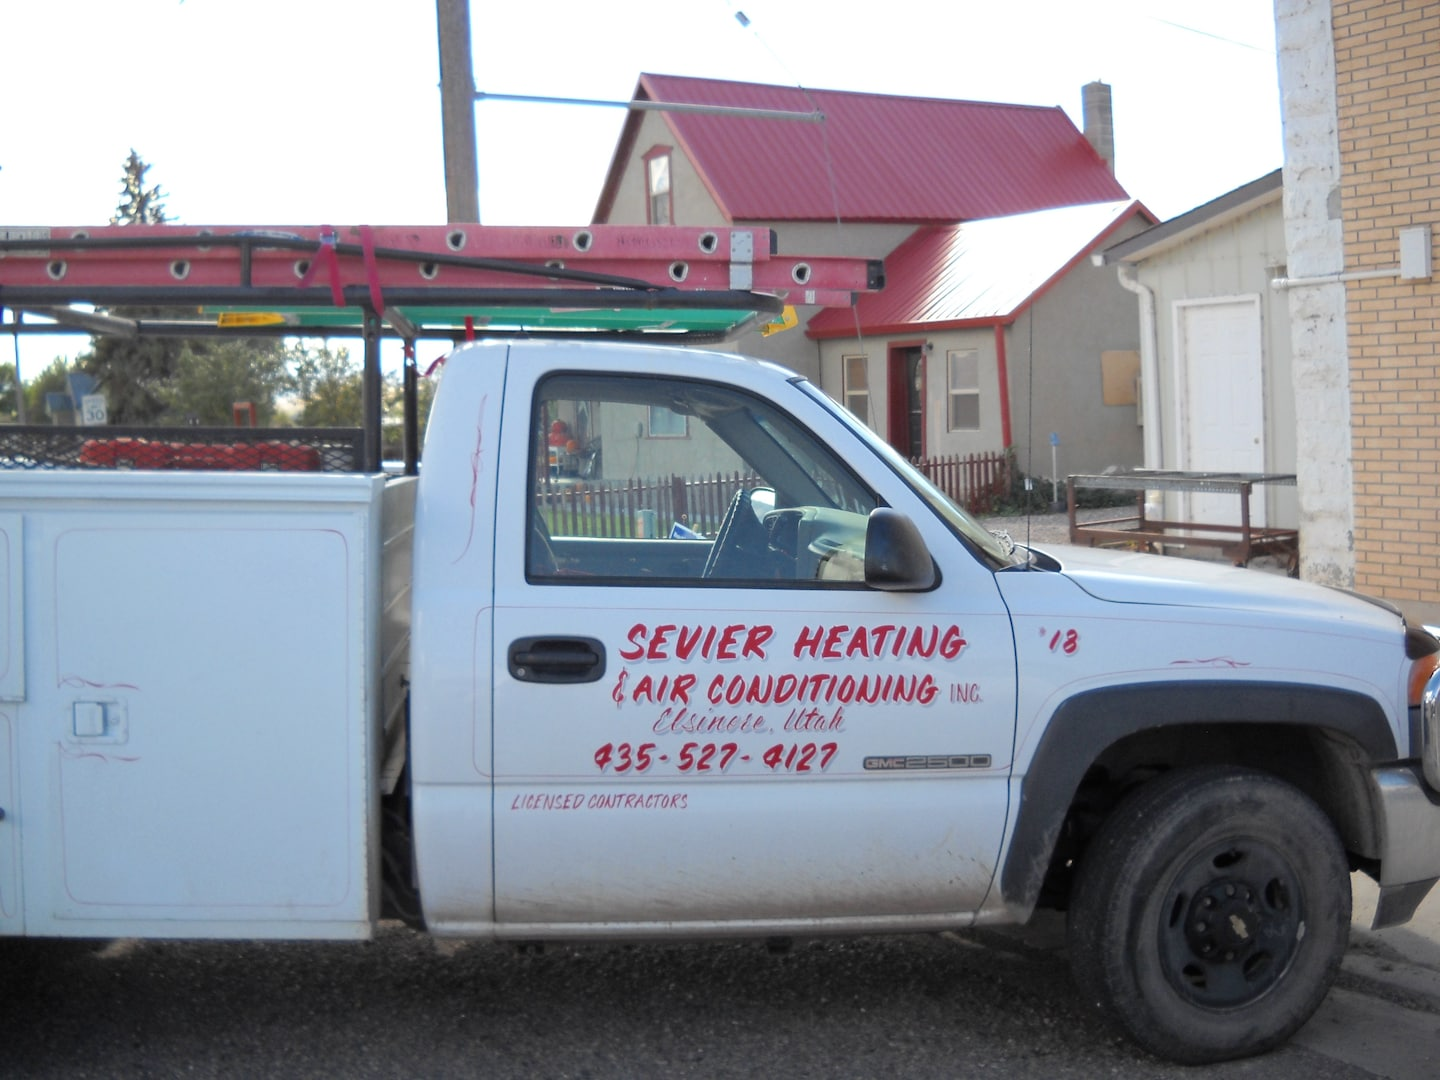 Sevier Heating & Air Conditioning